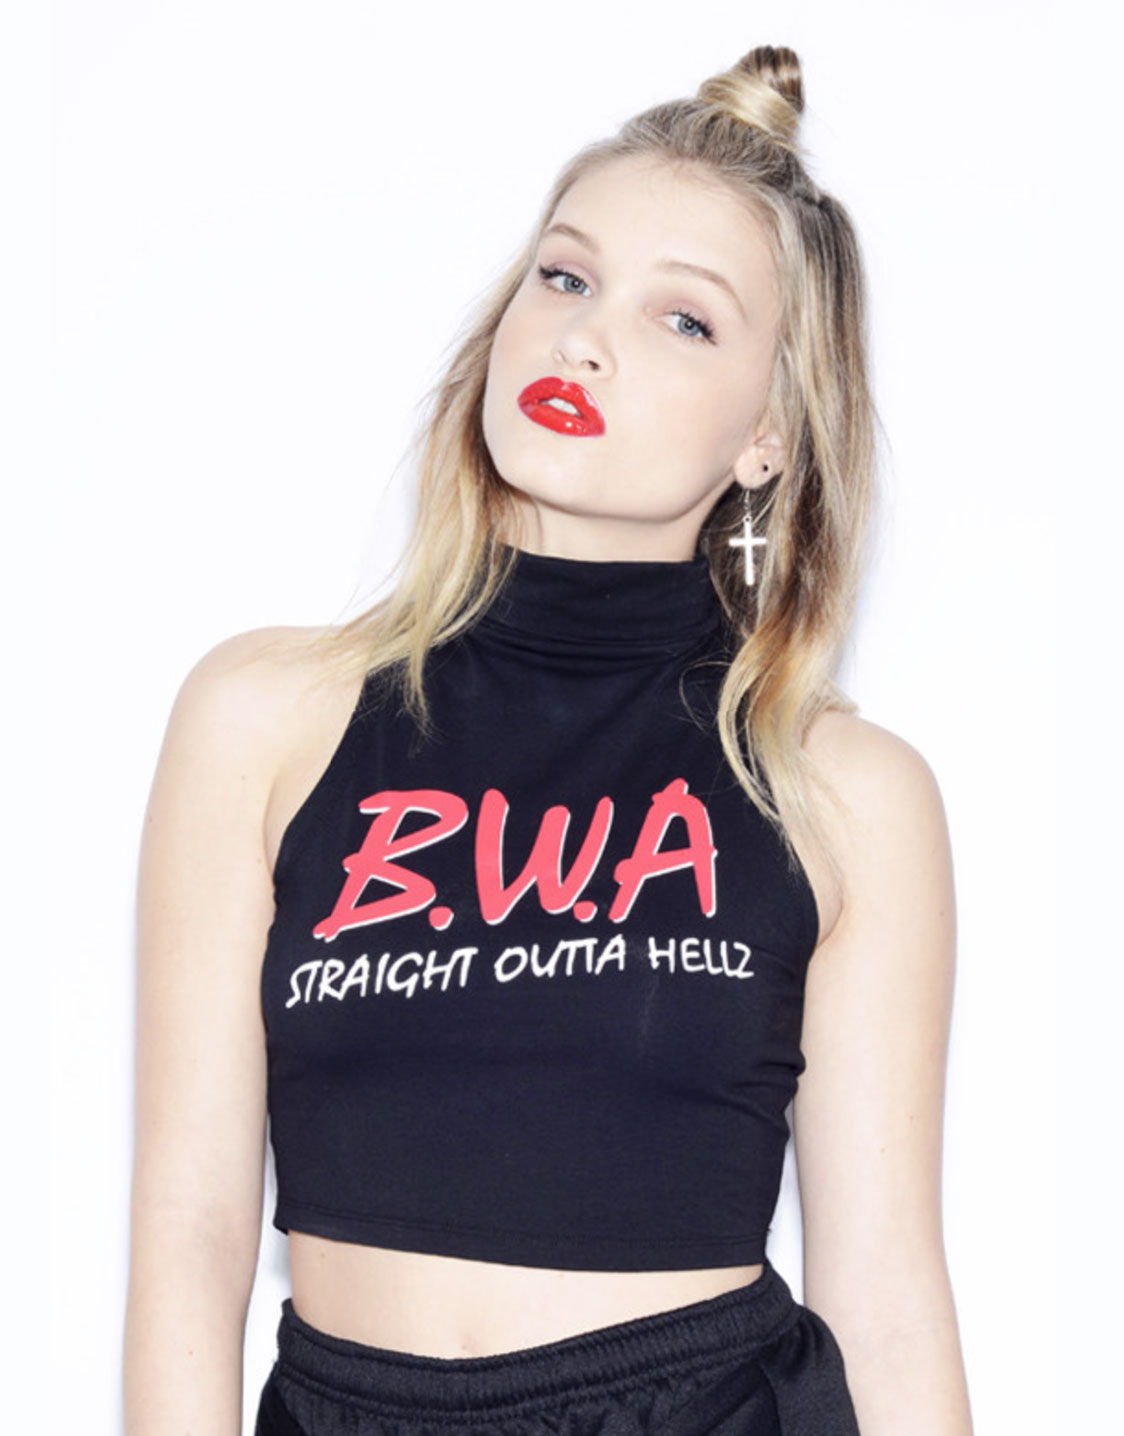 3a6febb37313b2 HLZBLZ BWA Straight Outta HLZ crop top